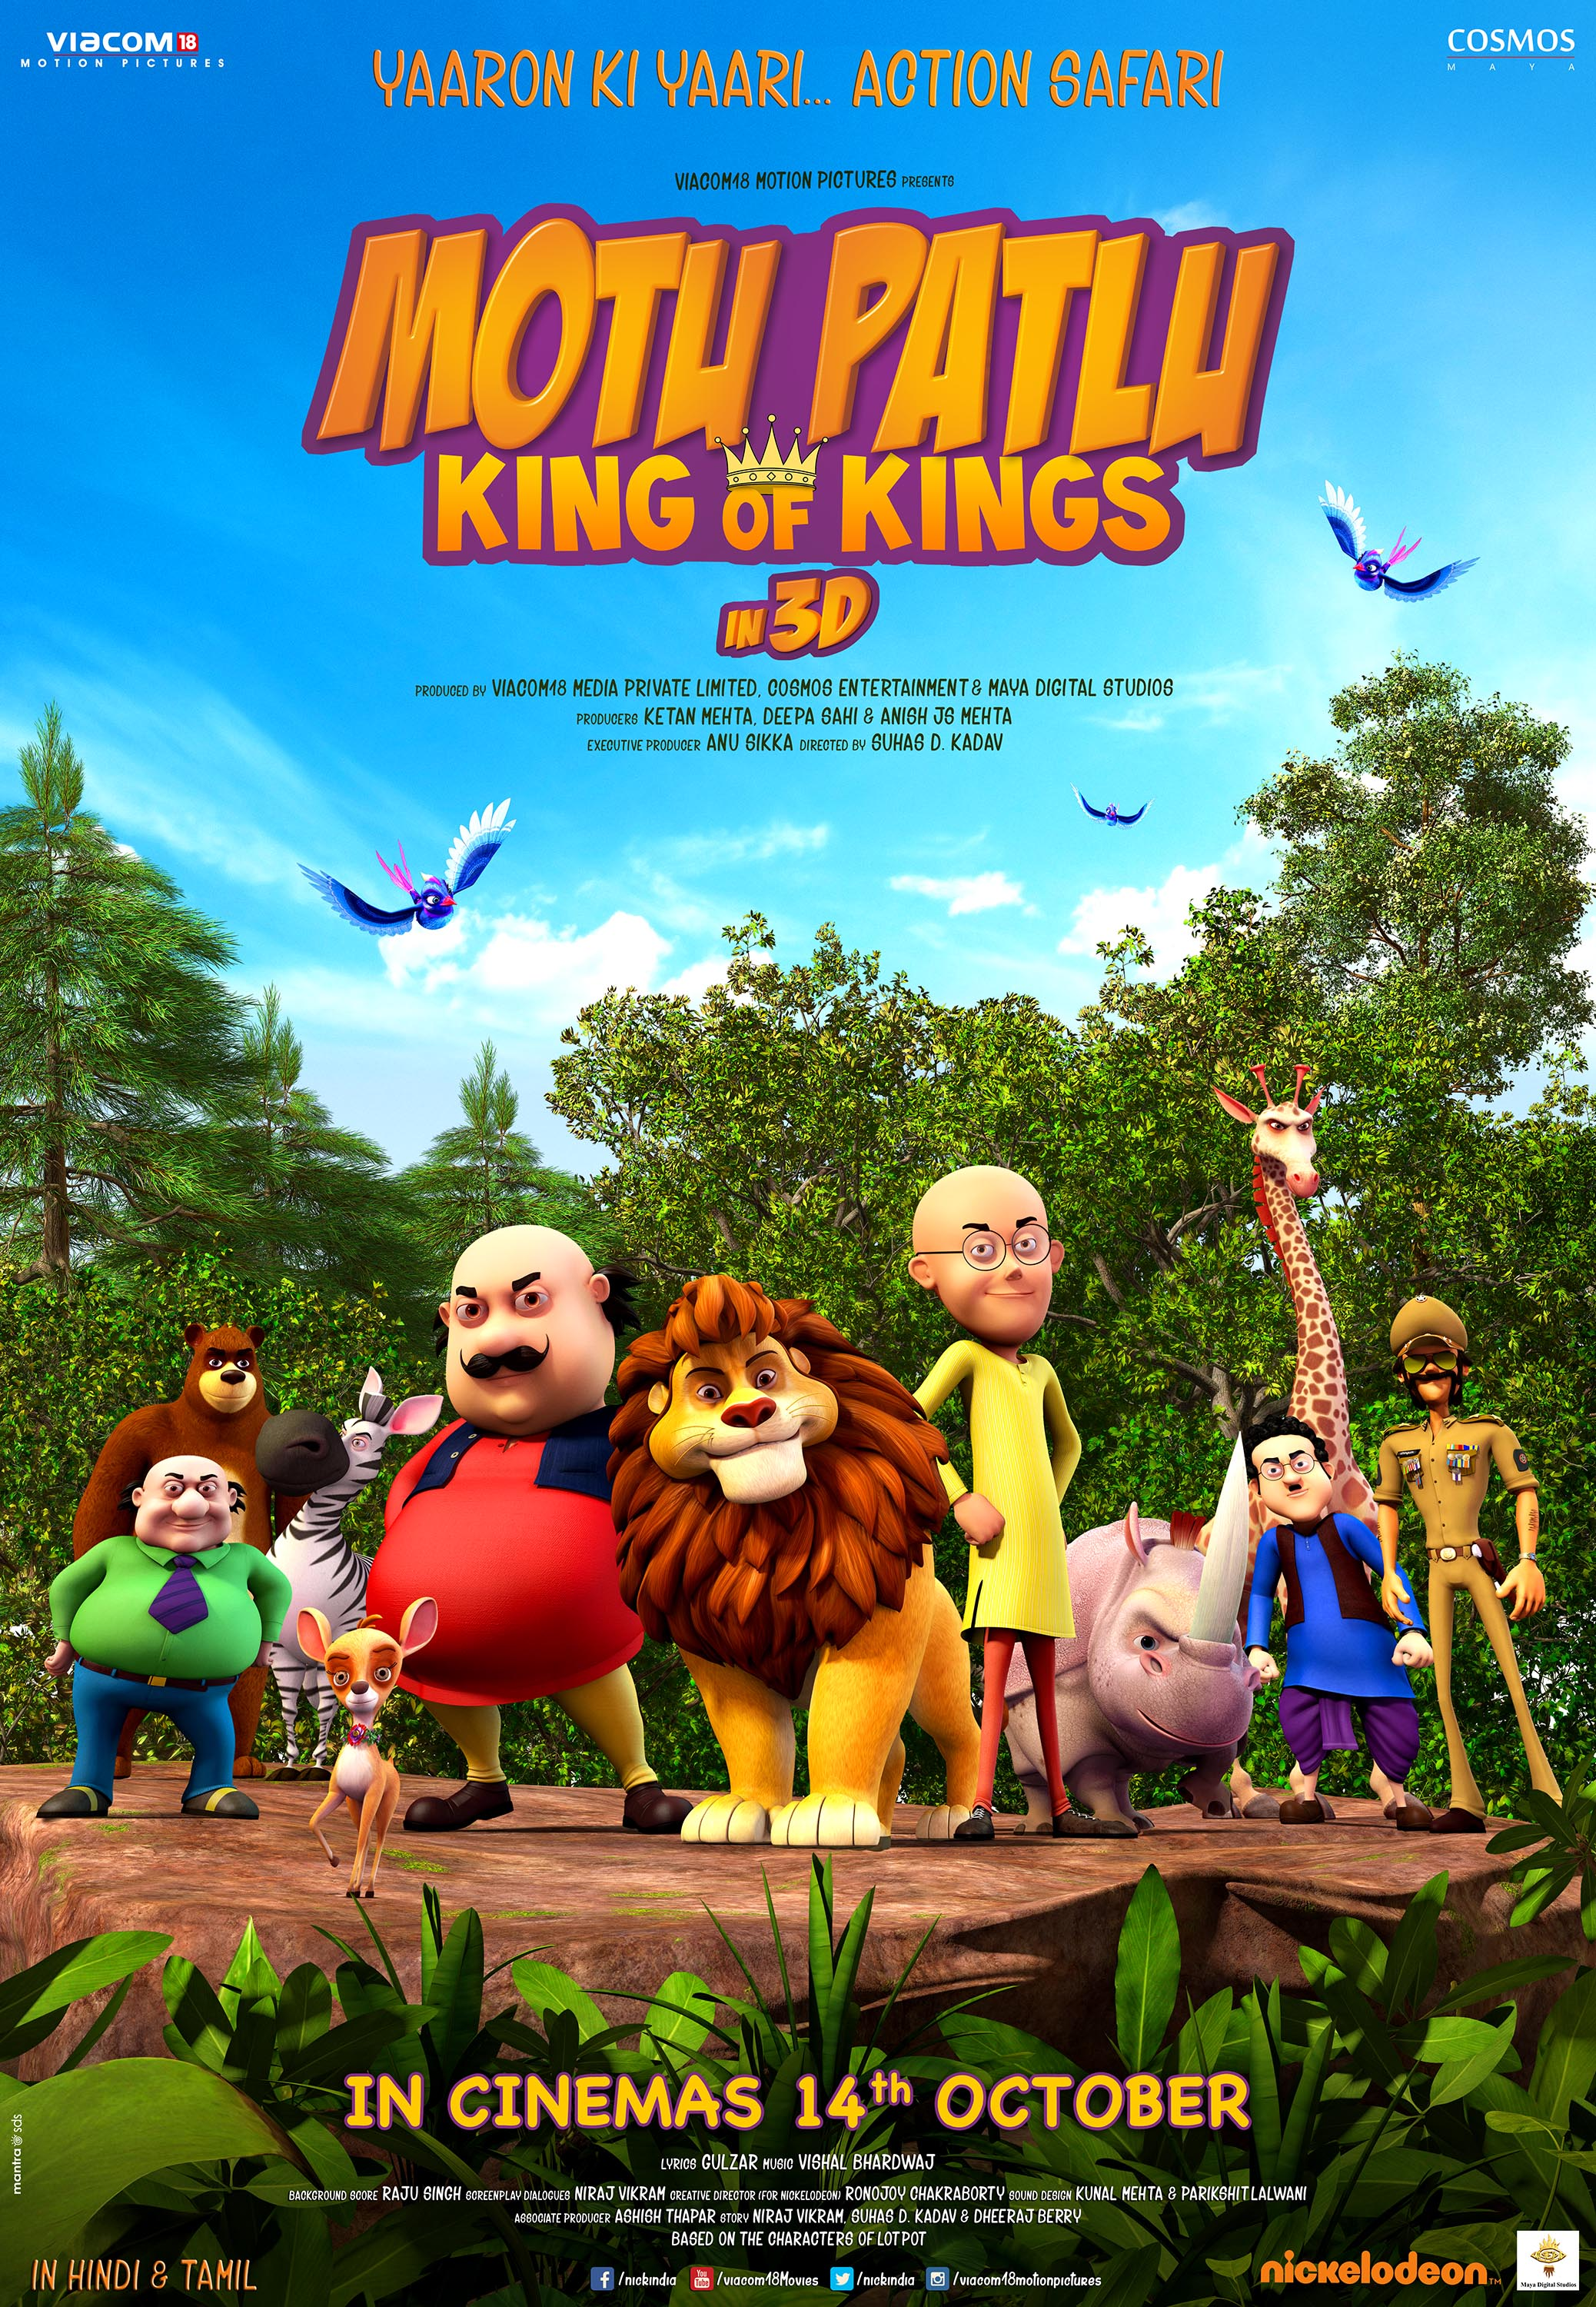 Motu Patlu-King Of Kings (2016) DVDRip 720p x264 Dual Audio [Hindi-Tamil] AAC 5.1…Hon3y – 1.44 GB